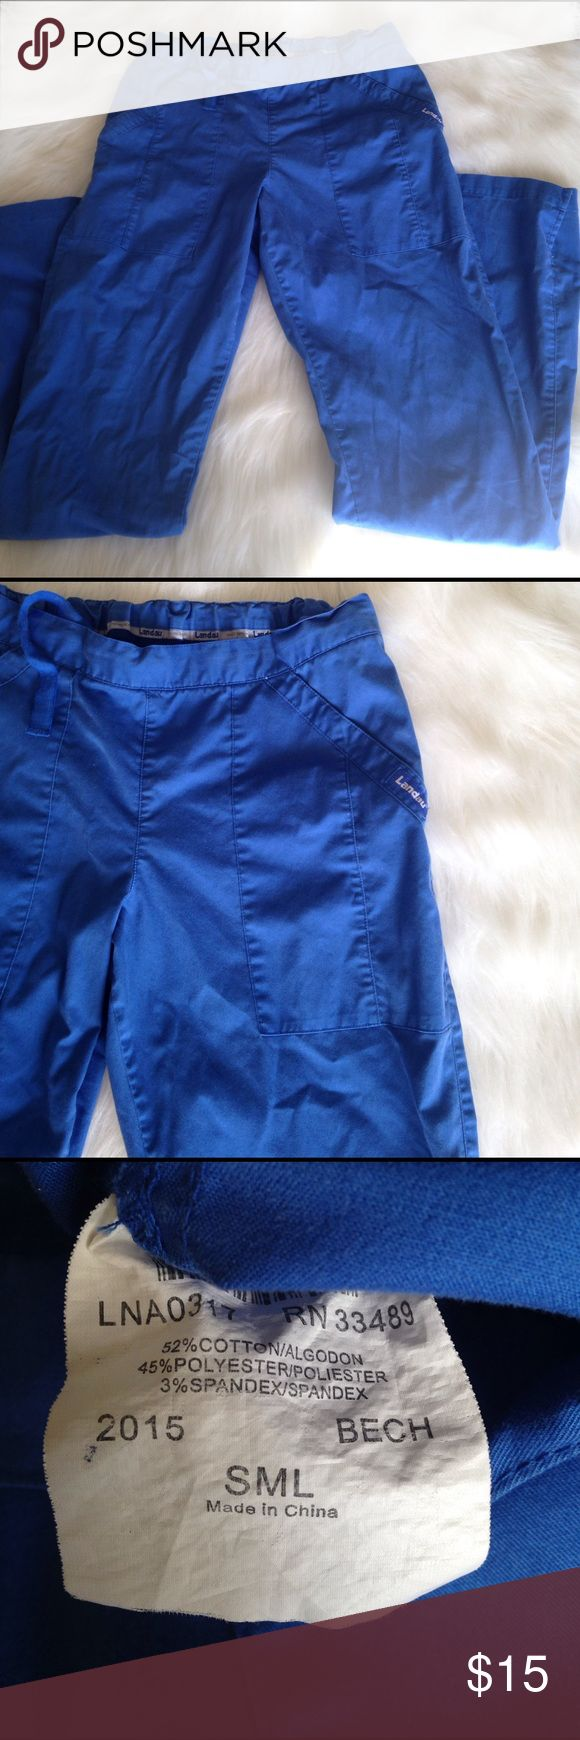 Landau scrub pants Chic blue scrub pants! Super soft material. No signs of wear. Let me know if you have any questions! Landau Pants Straight Leg